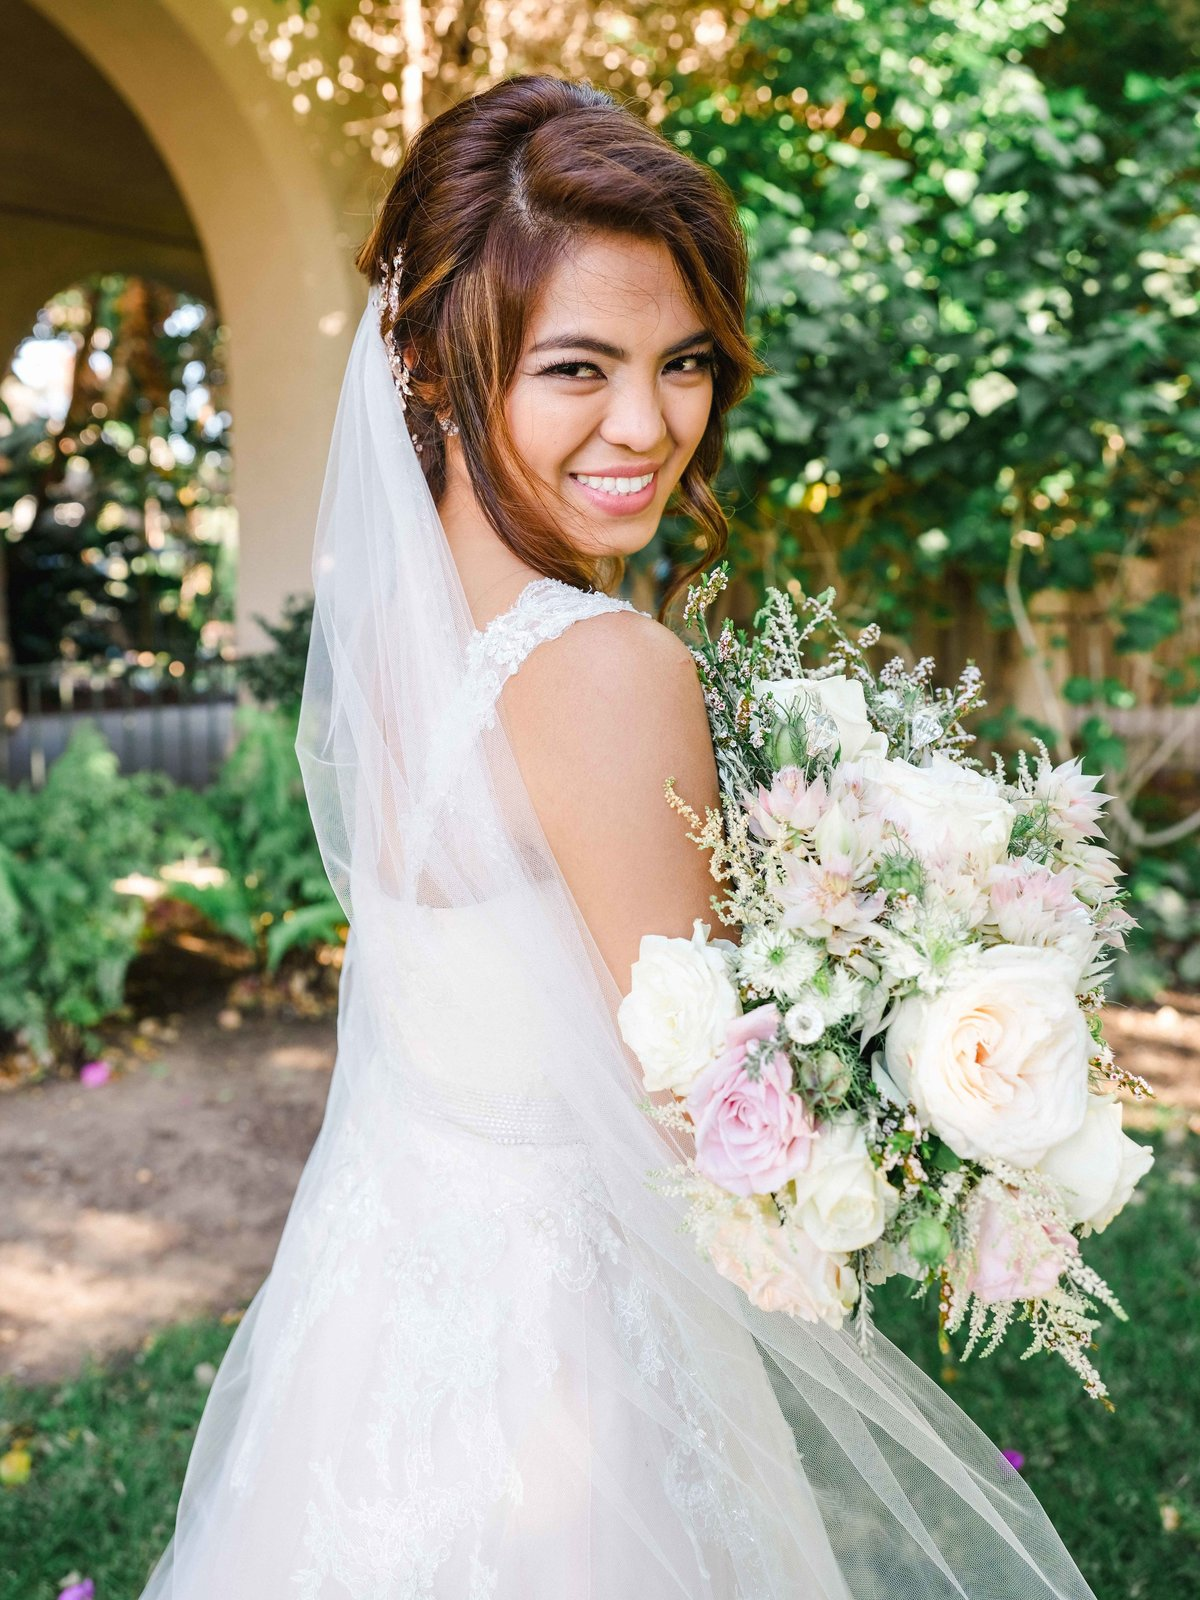 Babsie-Ly-Photography-San-Diego-Fine-Art-Film-Wedding-Photographer-Balboa-Park-Prado-Bride-Filipino-Jenelle-001